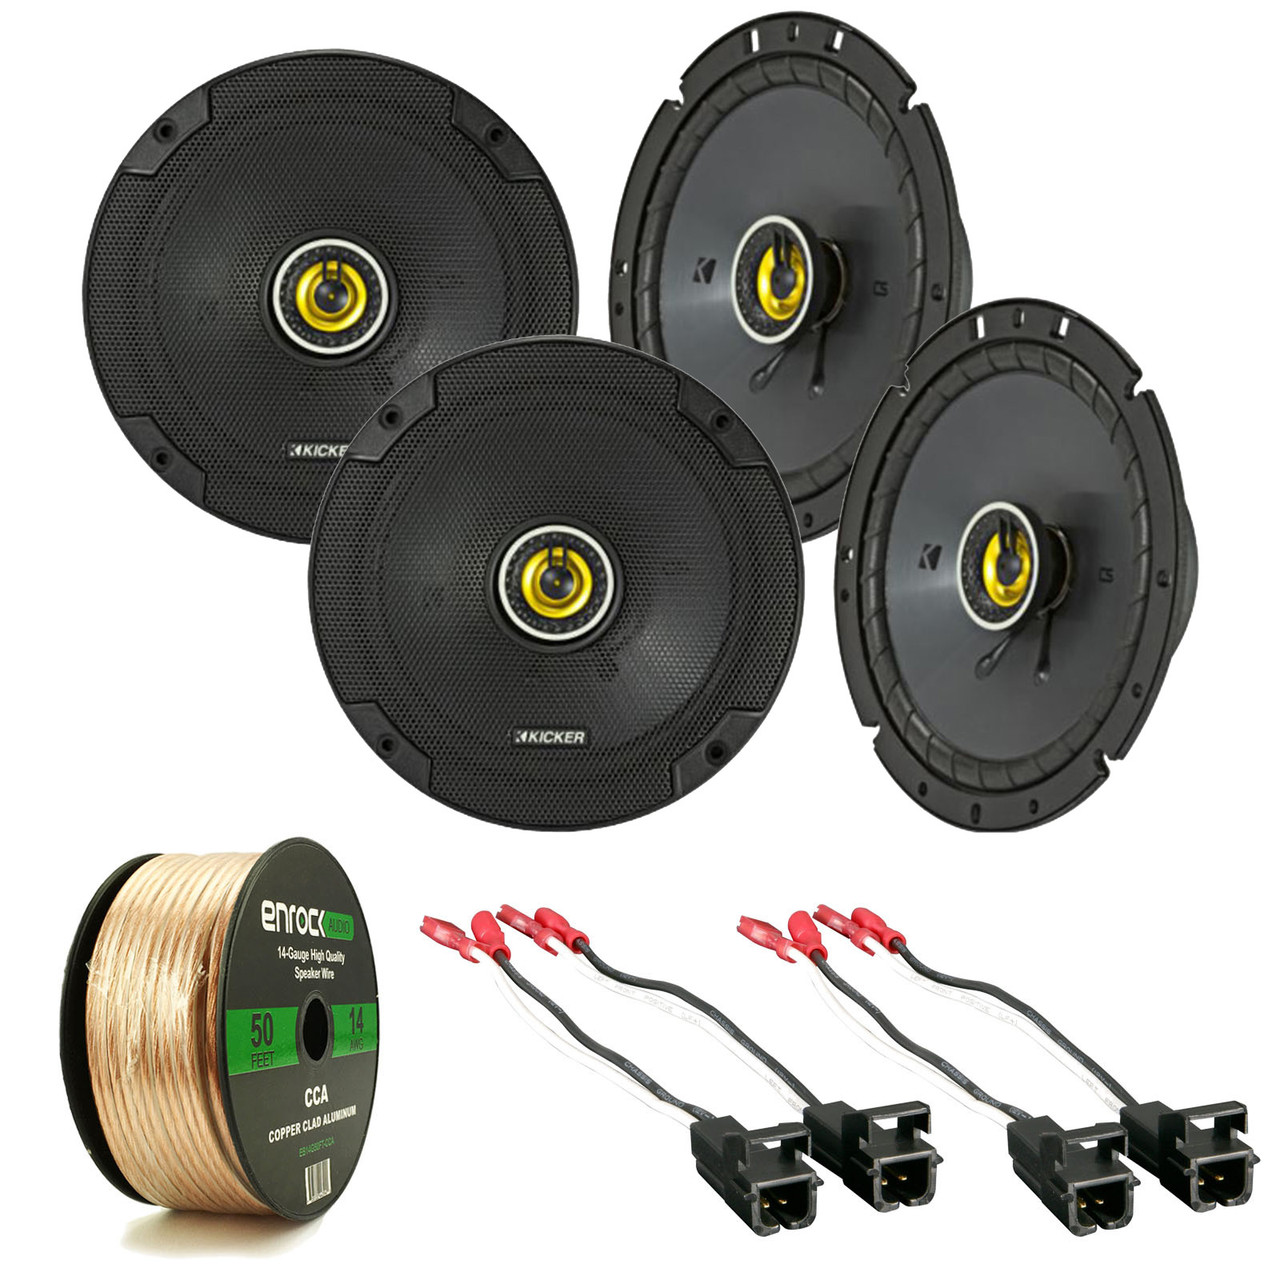 medium resolution of 8x kicker 6 3 4 car speakers 2x speaker wire harness 14 awg 50ft wire r 40cs674 2 72 4568 road entertainment